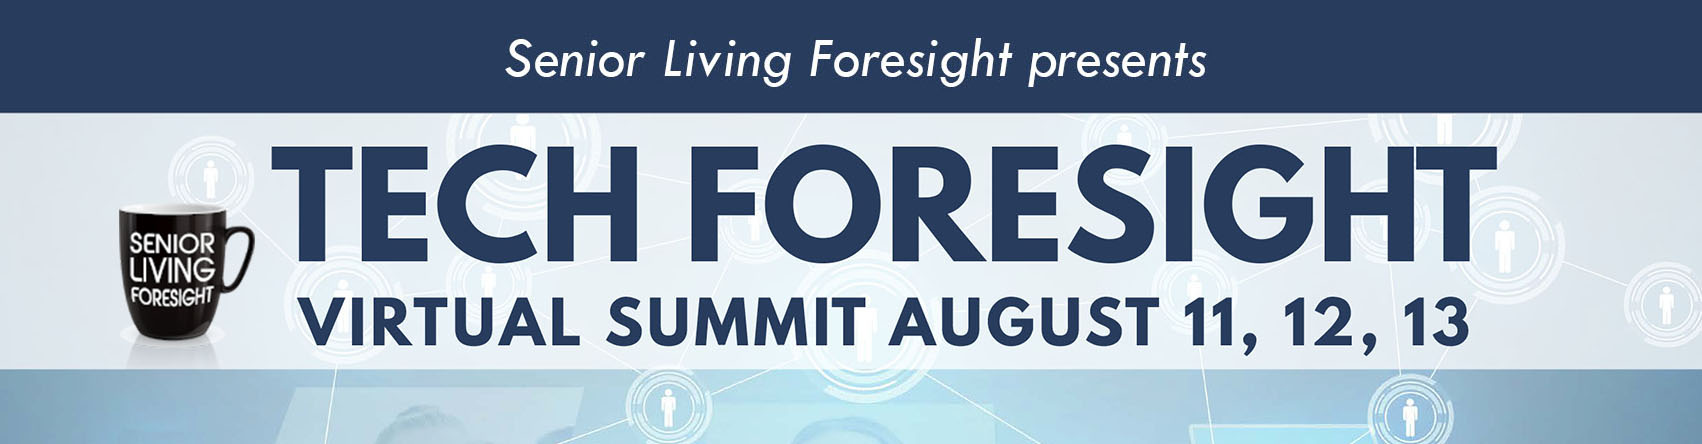 Senior Living Foresight Virtual Summit